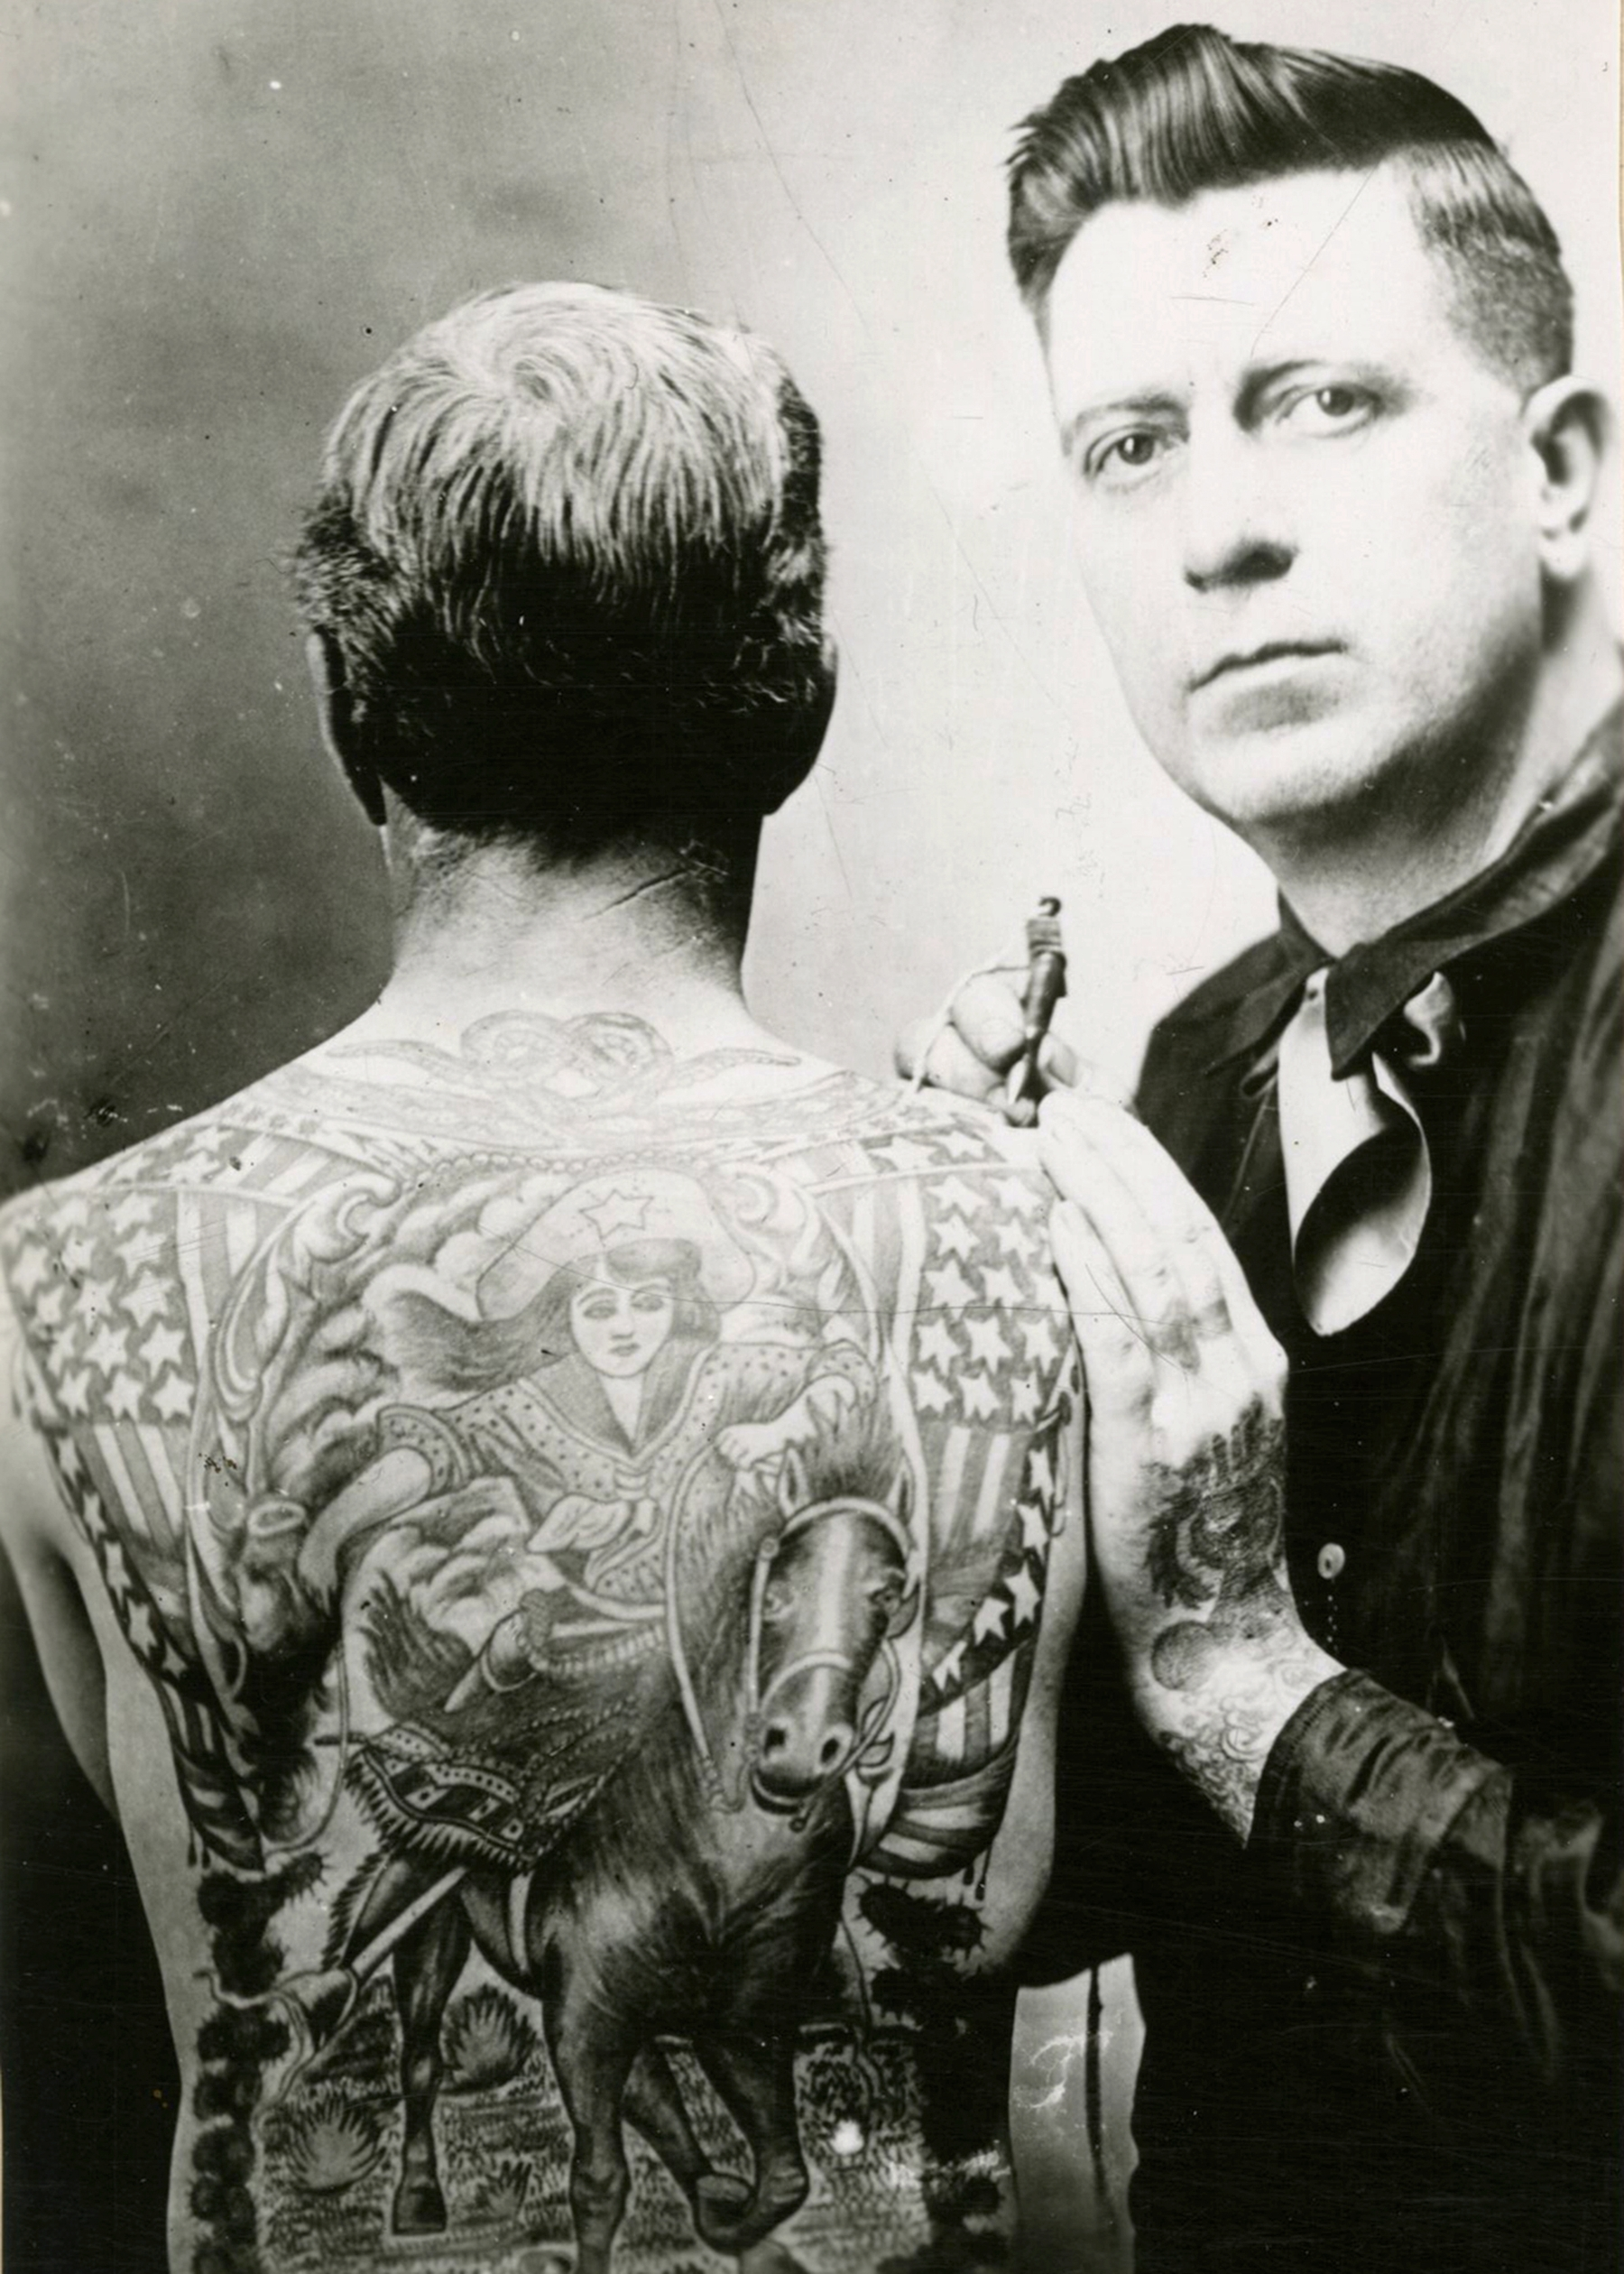 A man with tattoos on his back.